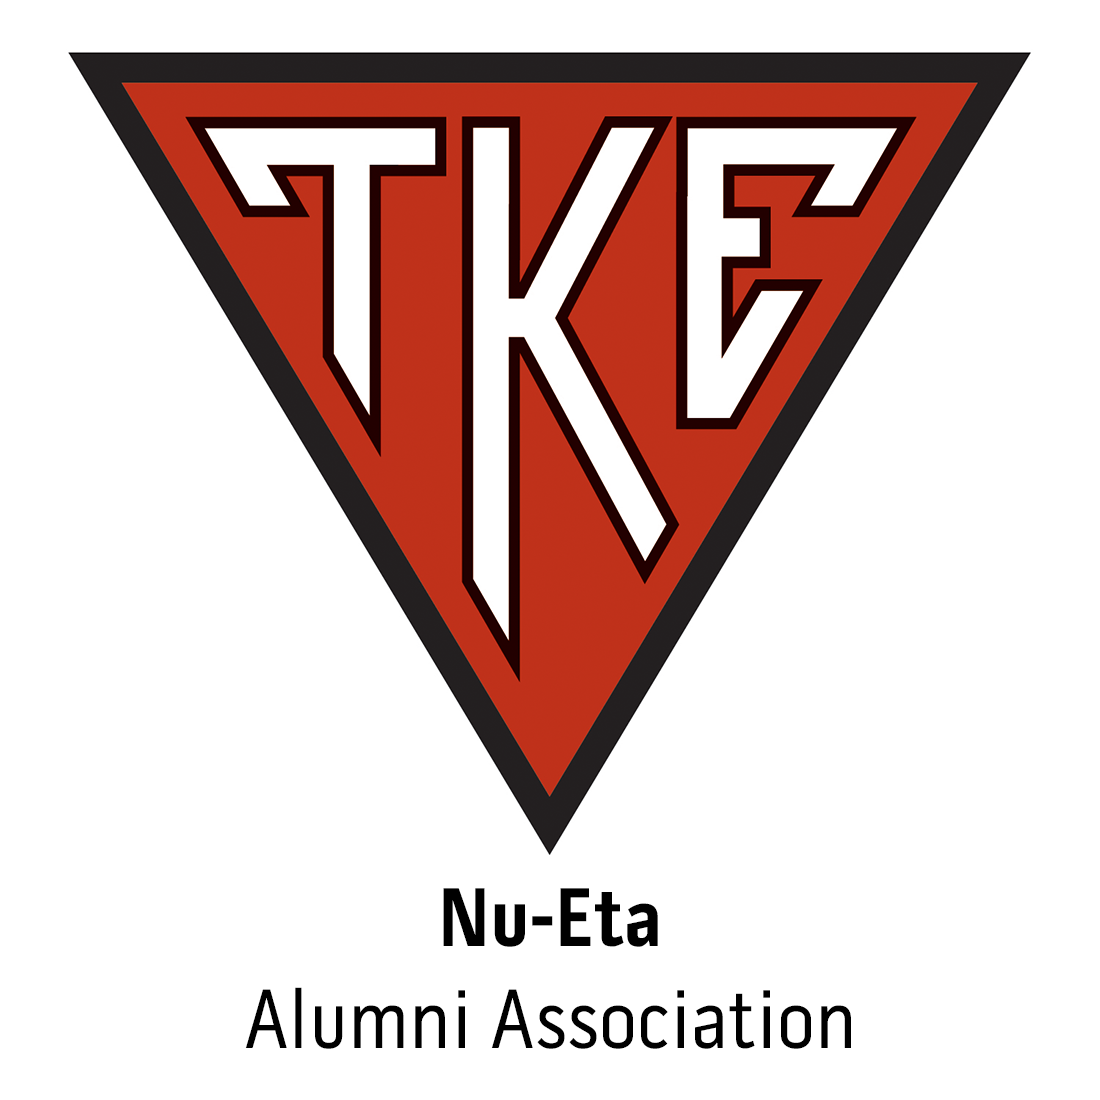 Nu-Eta Alumni Association at Boise State University